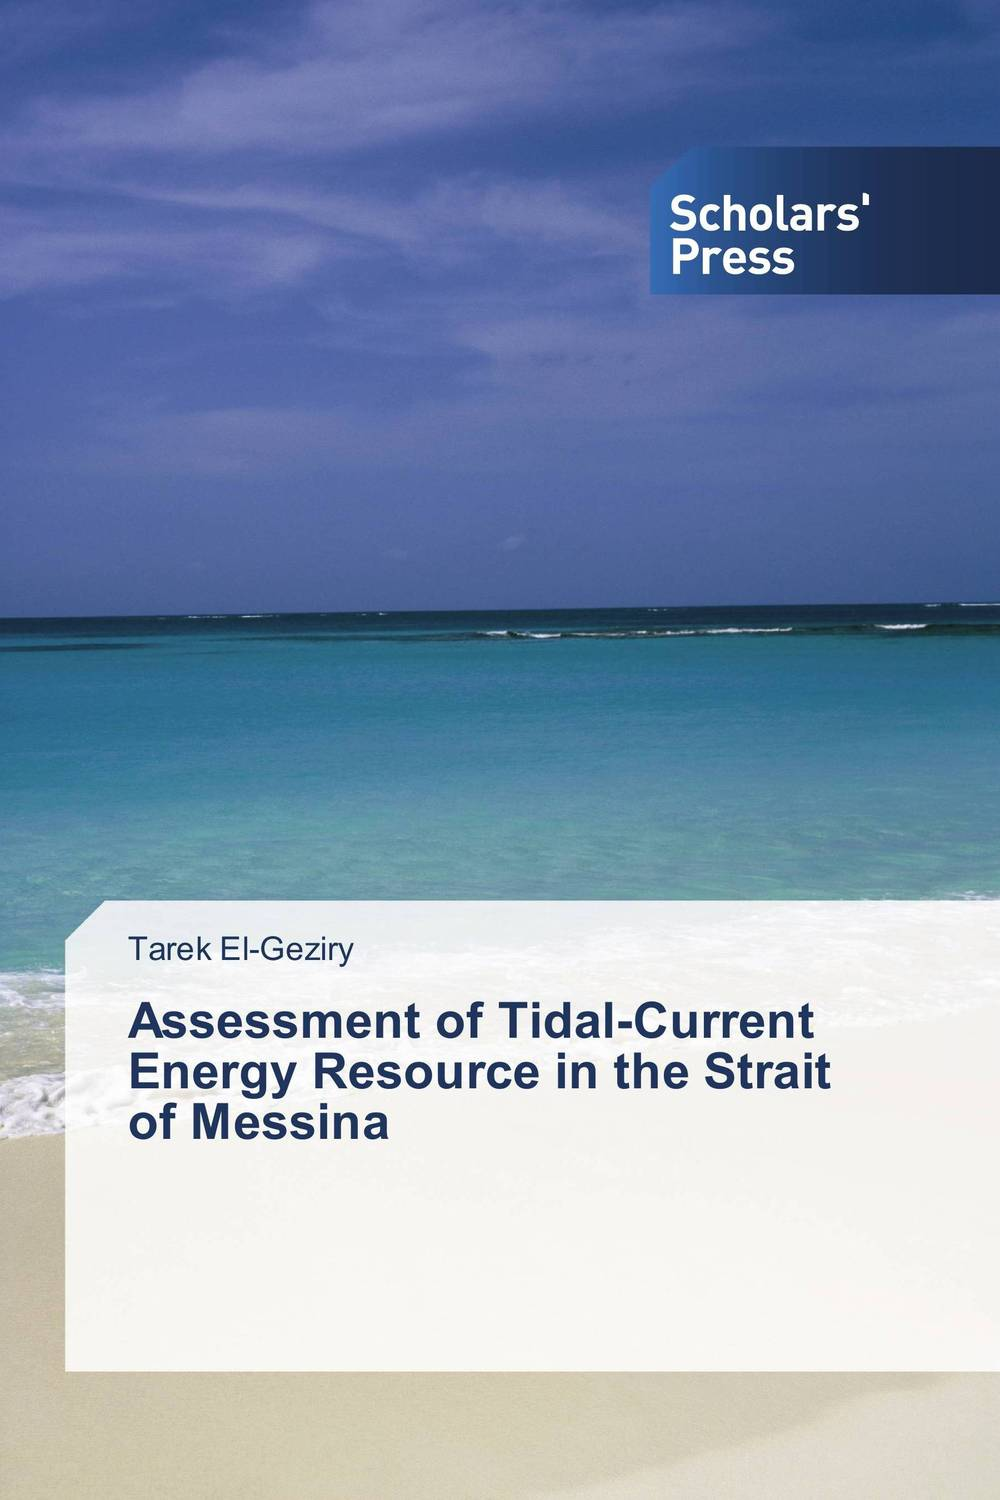 Assessment of Tidal-Current Energy Resource in the Strait of Messina tarek el geziry assessment of tidal current energy resource in the strait of messina